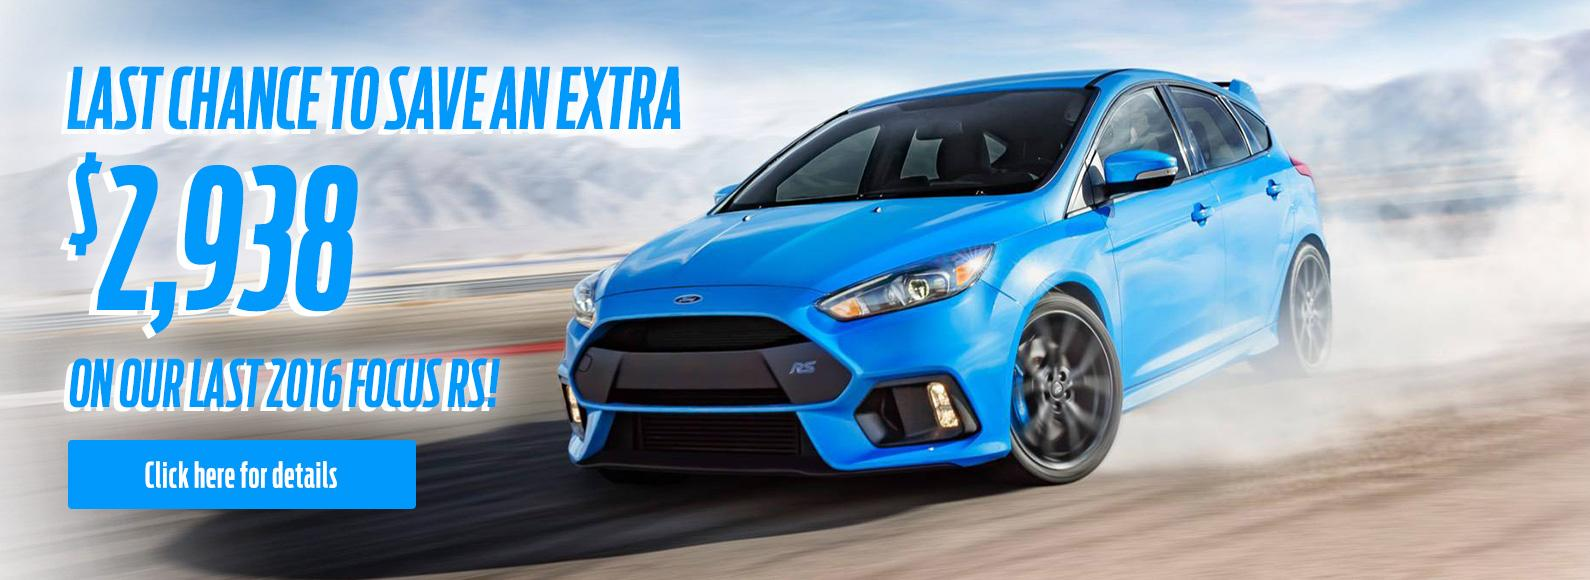 2016 Focus RS Save extra $2938!